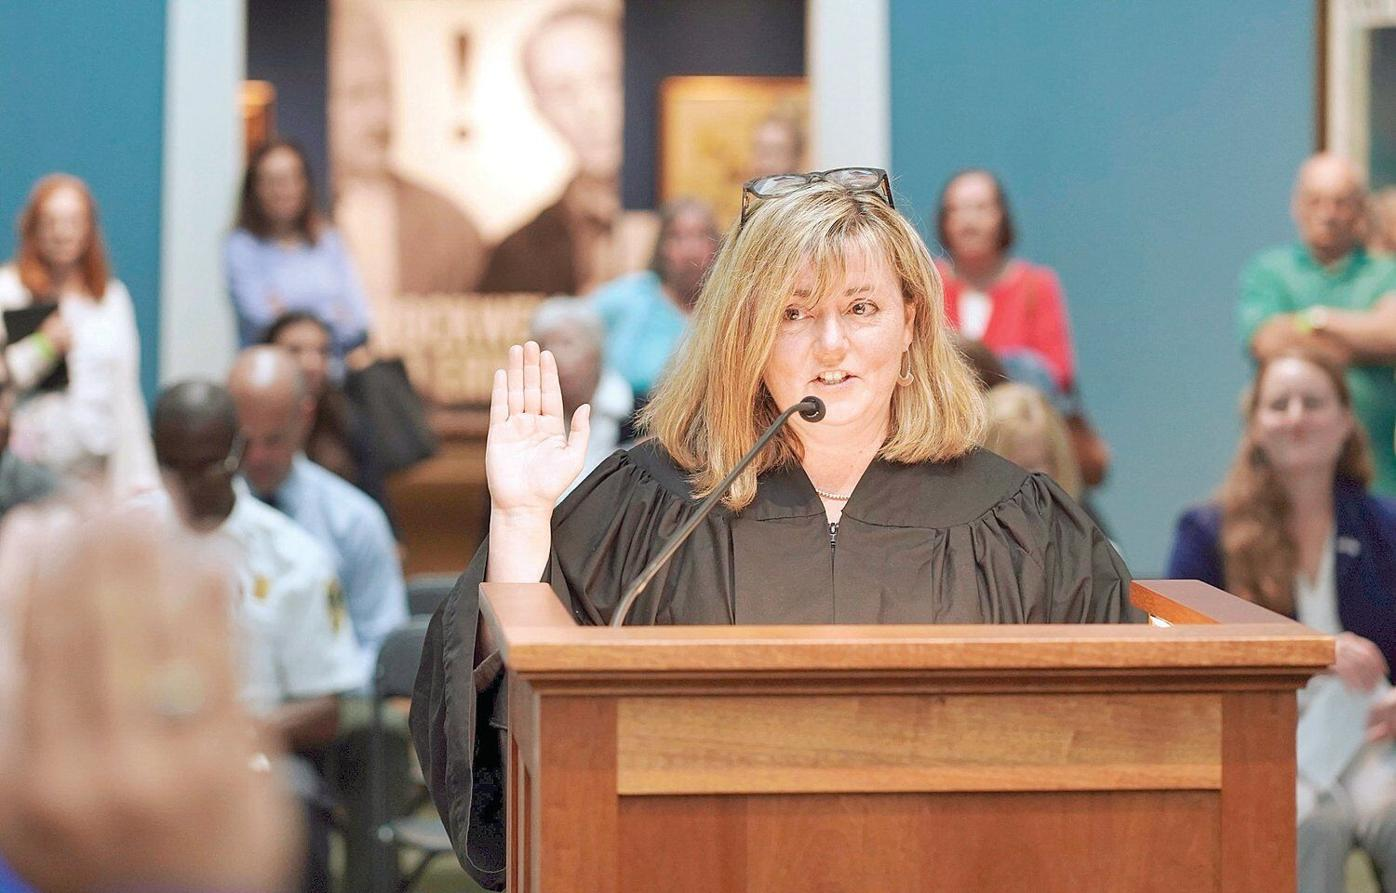 In 'the happiest courtroom' in the state, 18 become US citizens